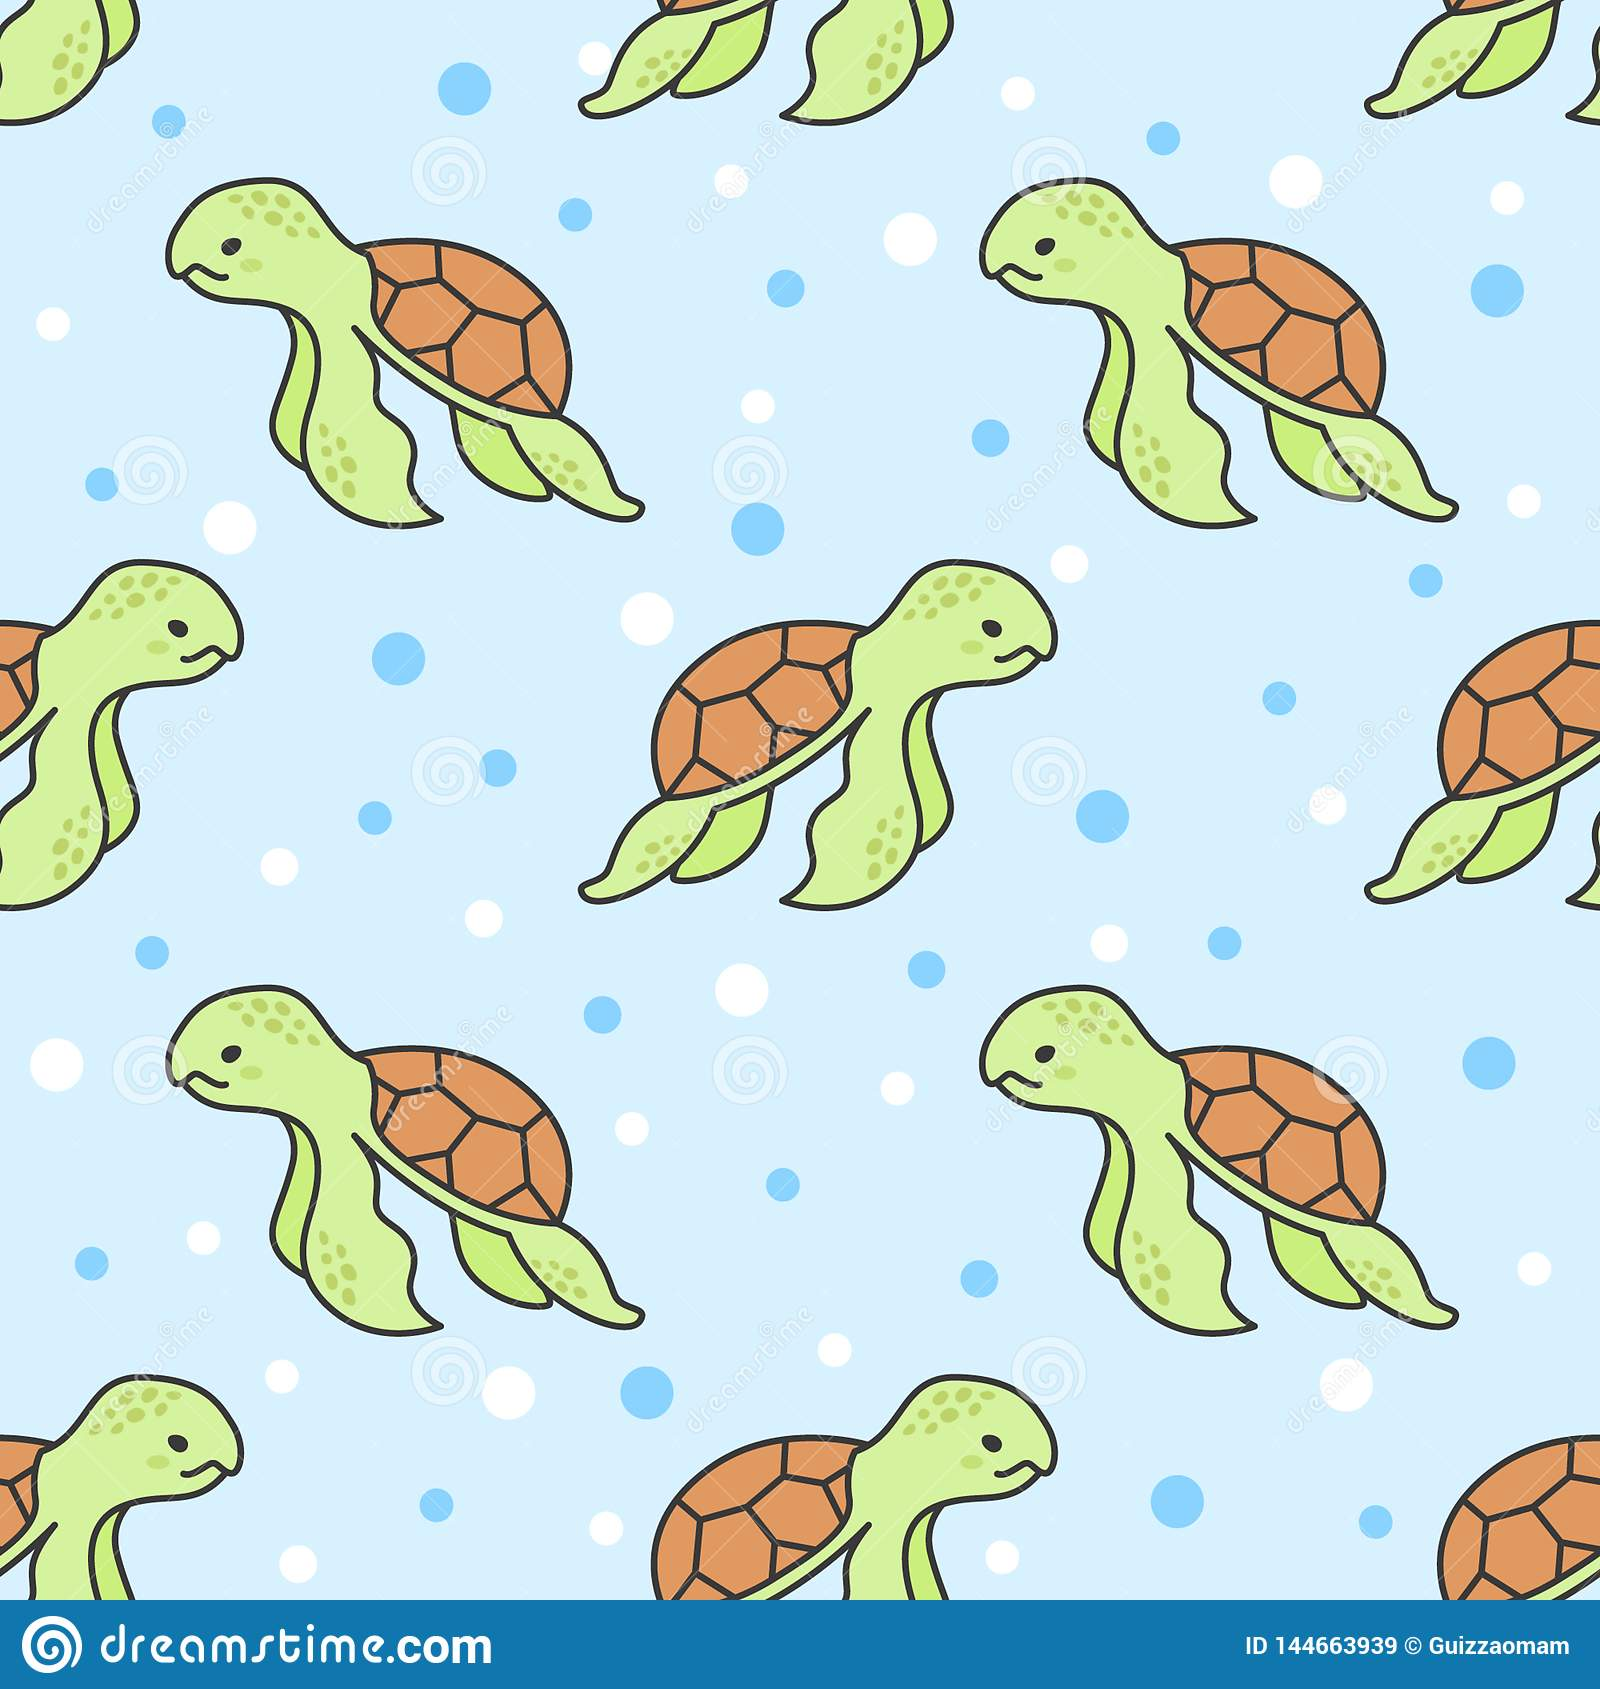 Cute Turtle Seamless Pattern Background Stock Illustration Illustration Of Design Graphic 144663939